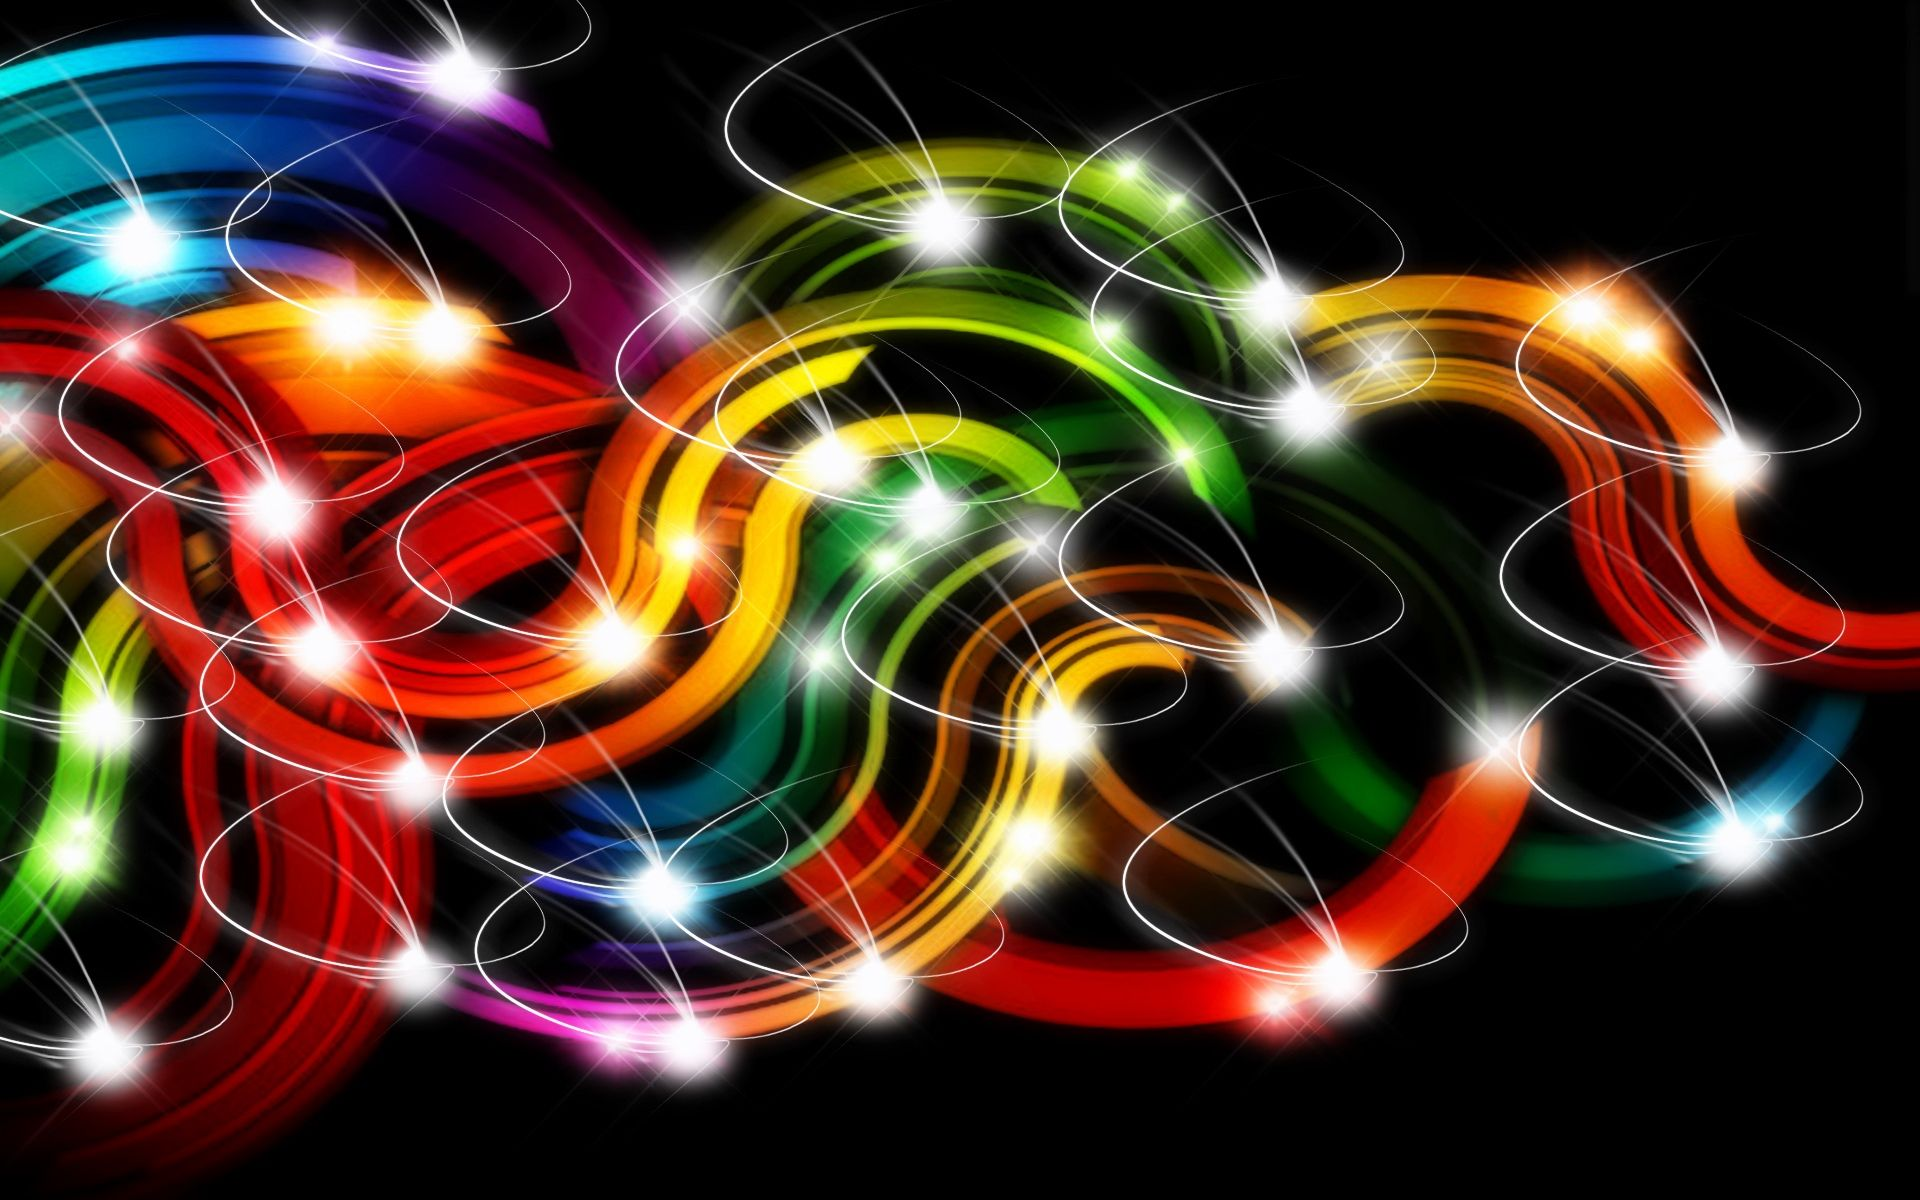 color desktop wallpaper HD Wallpaper 3D Abstract Wallpapers 1920x1200